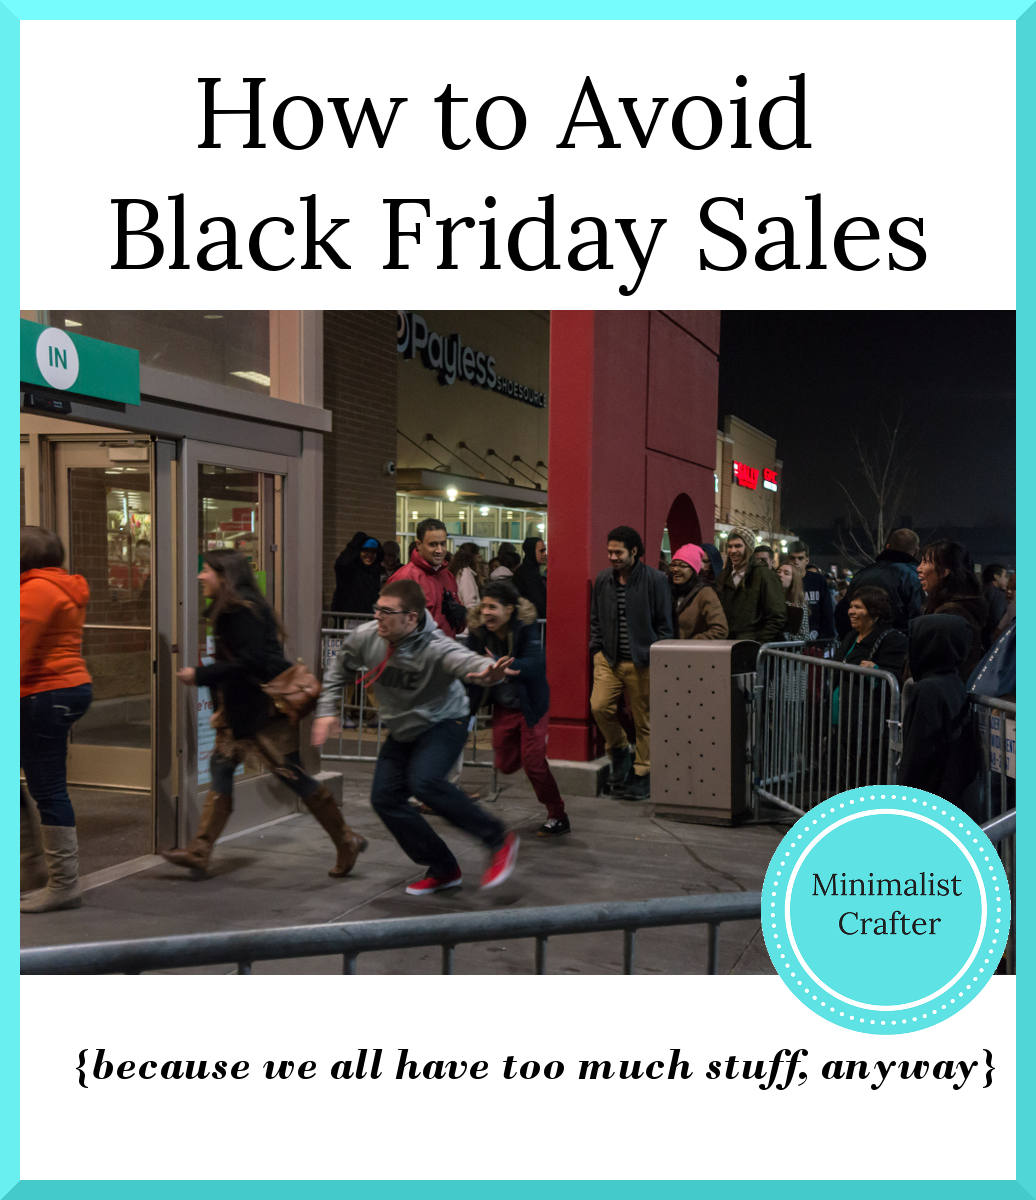 How to avoid Black Friday and Cyber Monday sales.